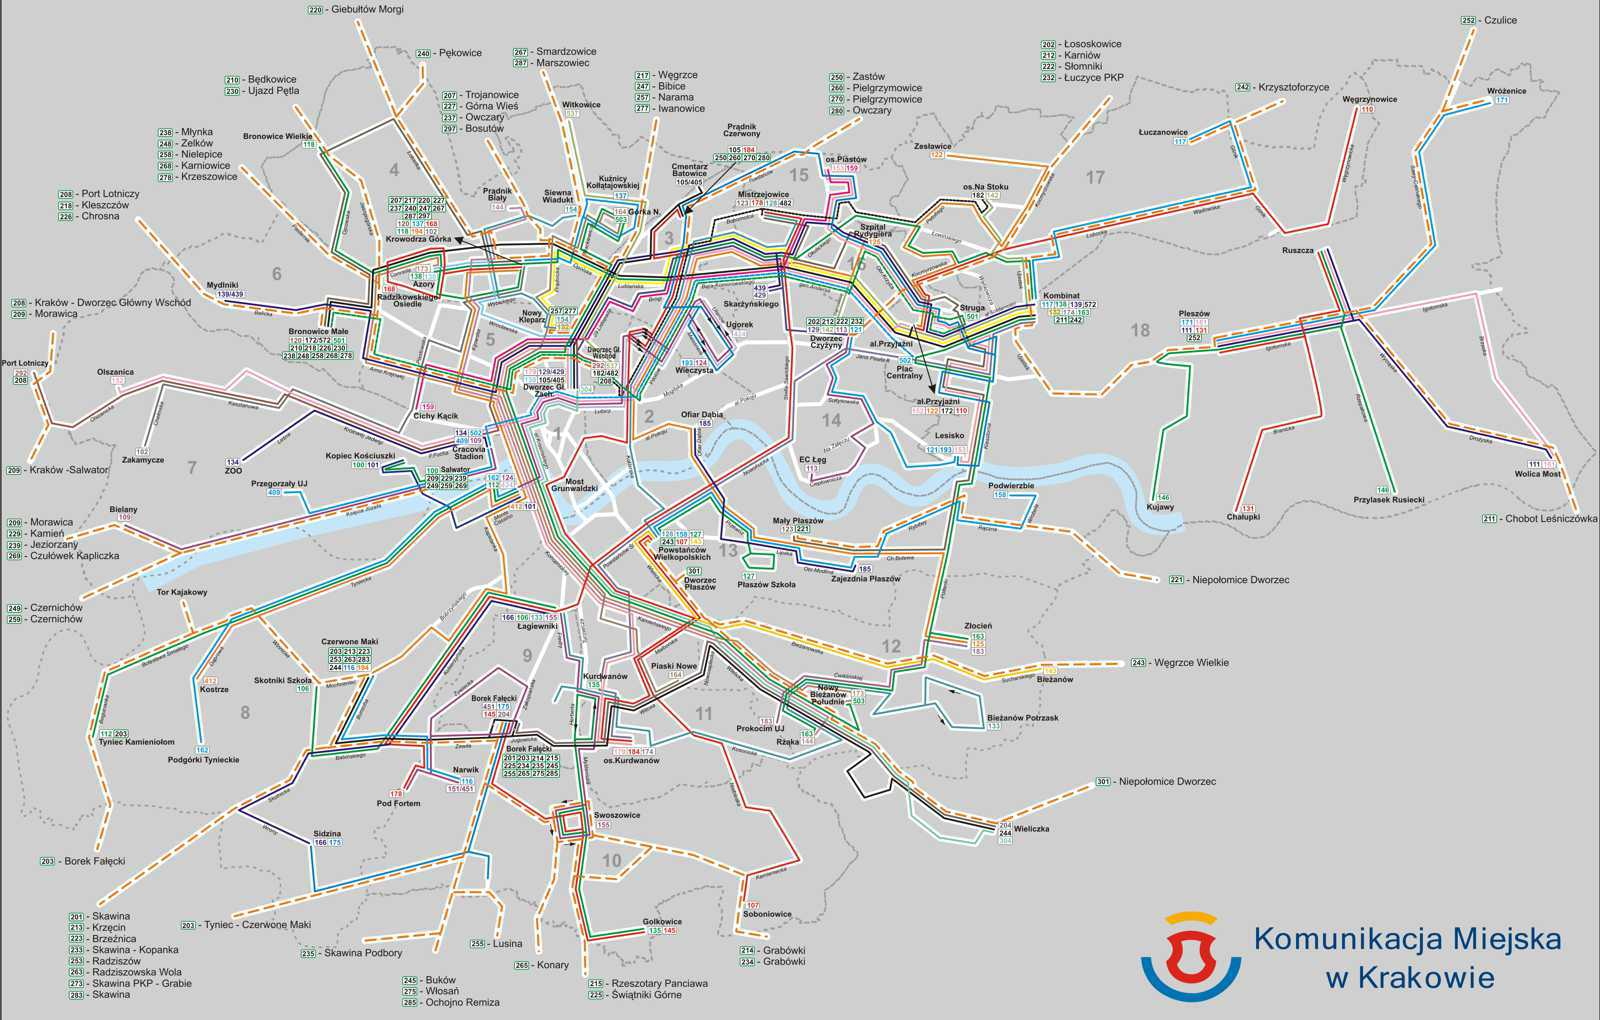 Maps of public transport in krakow bus lines tram lines map of krakow bus lines gumiabroncs Images